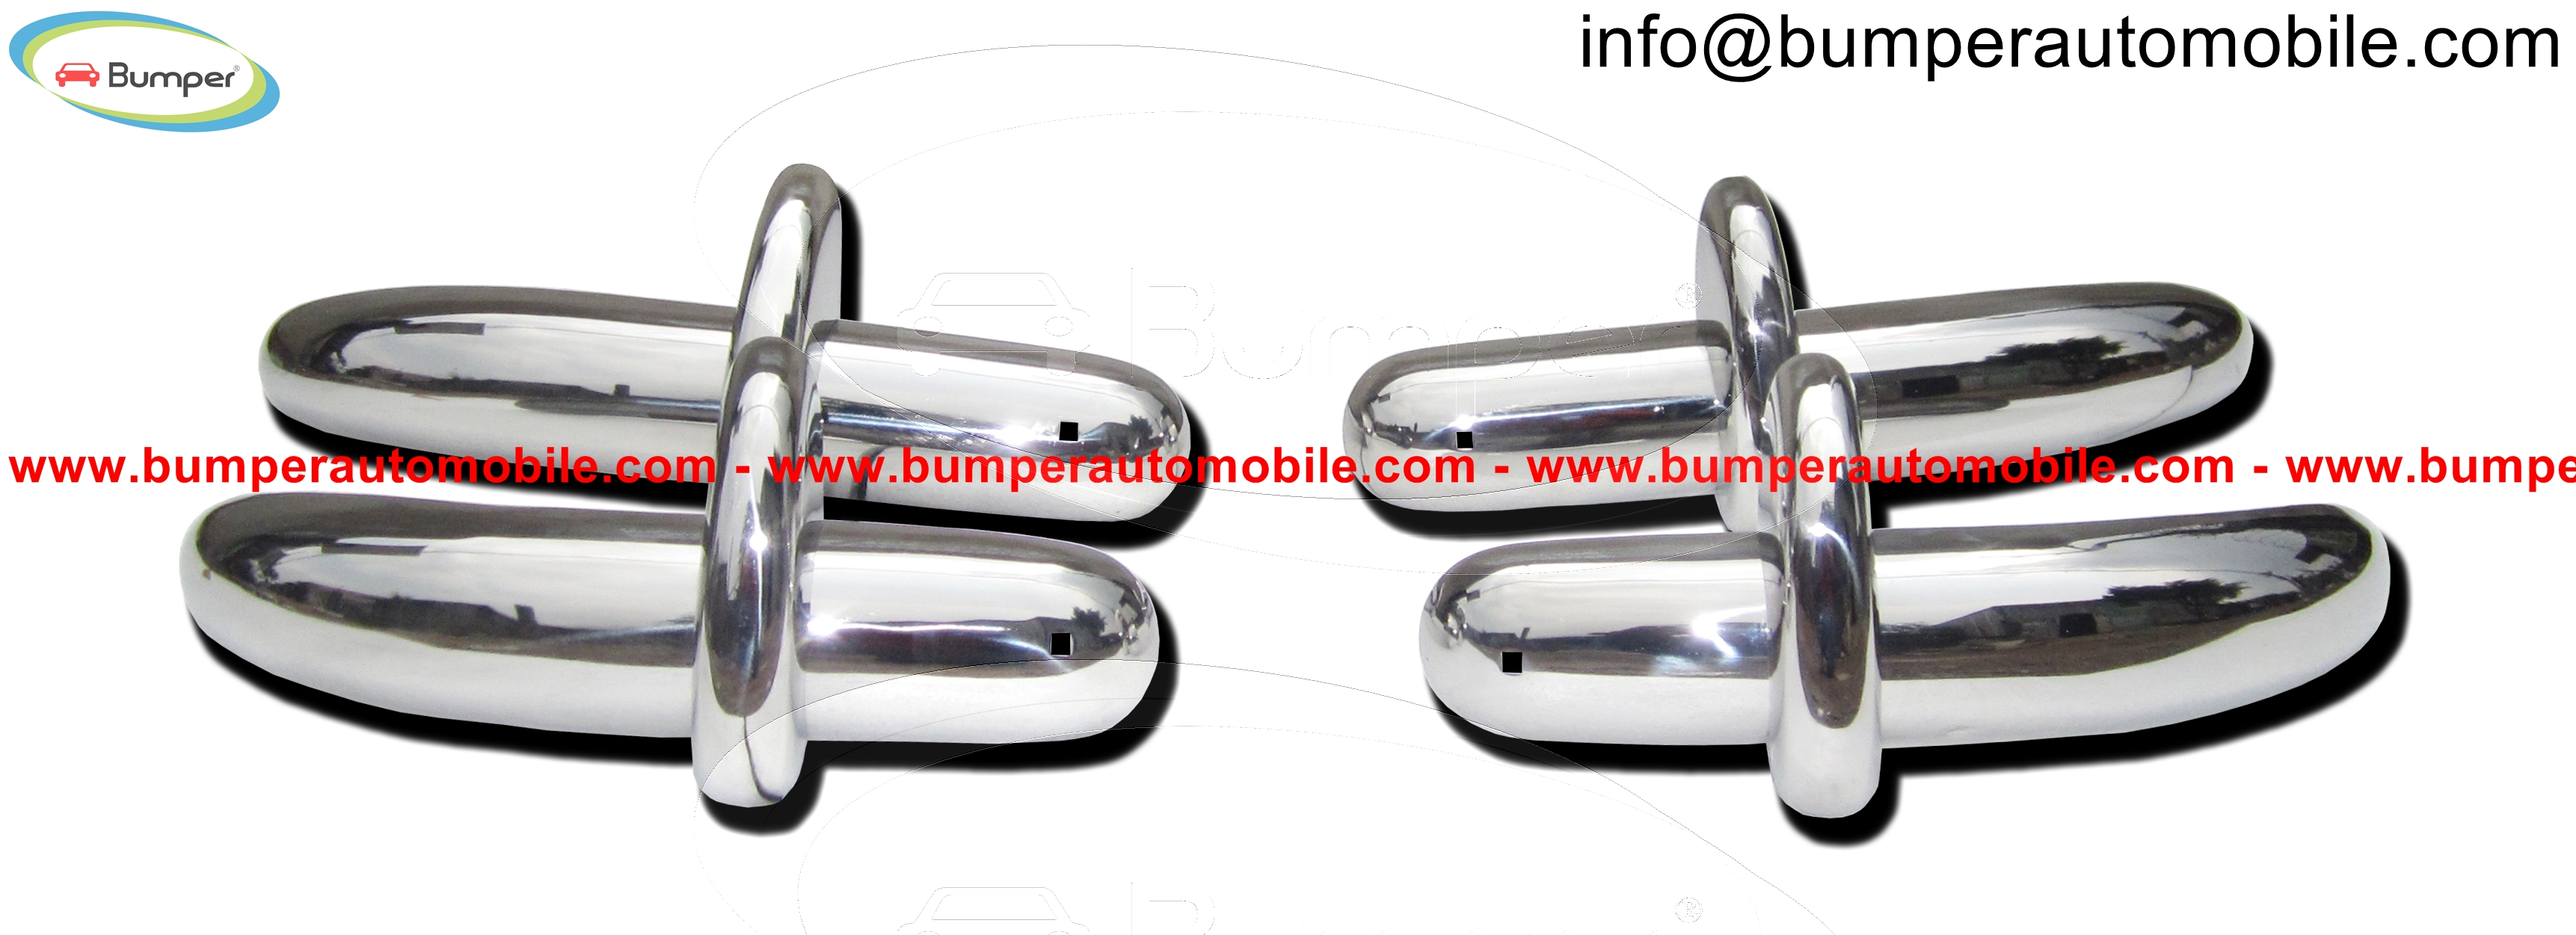 Full set bumper Saab 92 (1949-51) and Saab 92B (1952-1956) 2